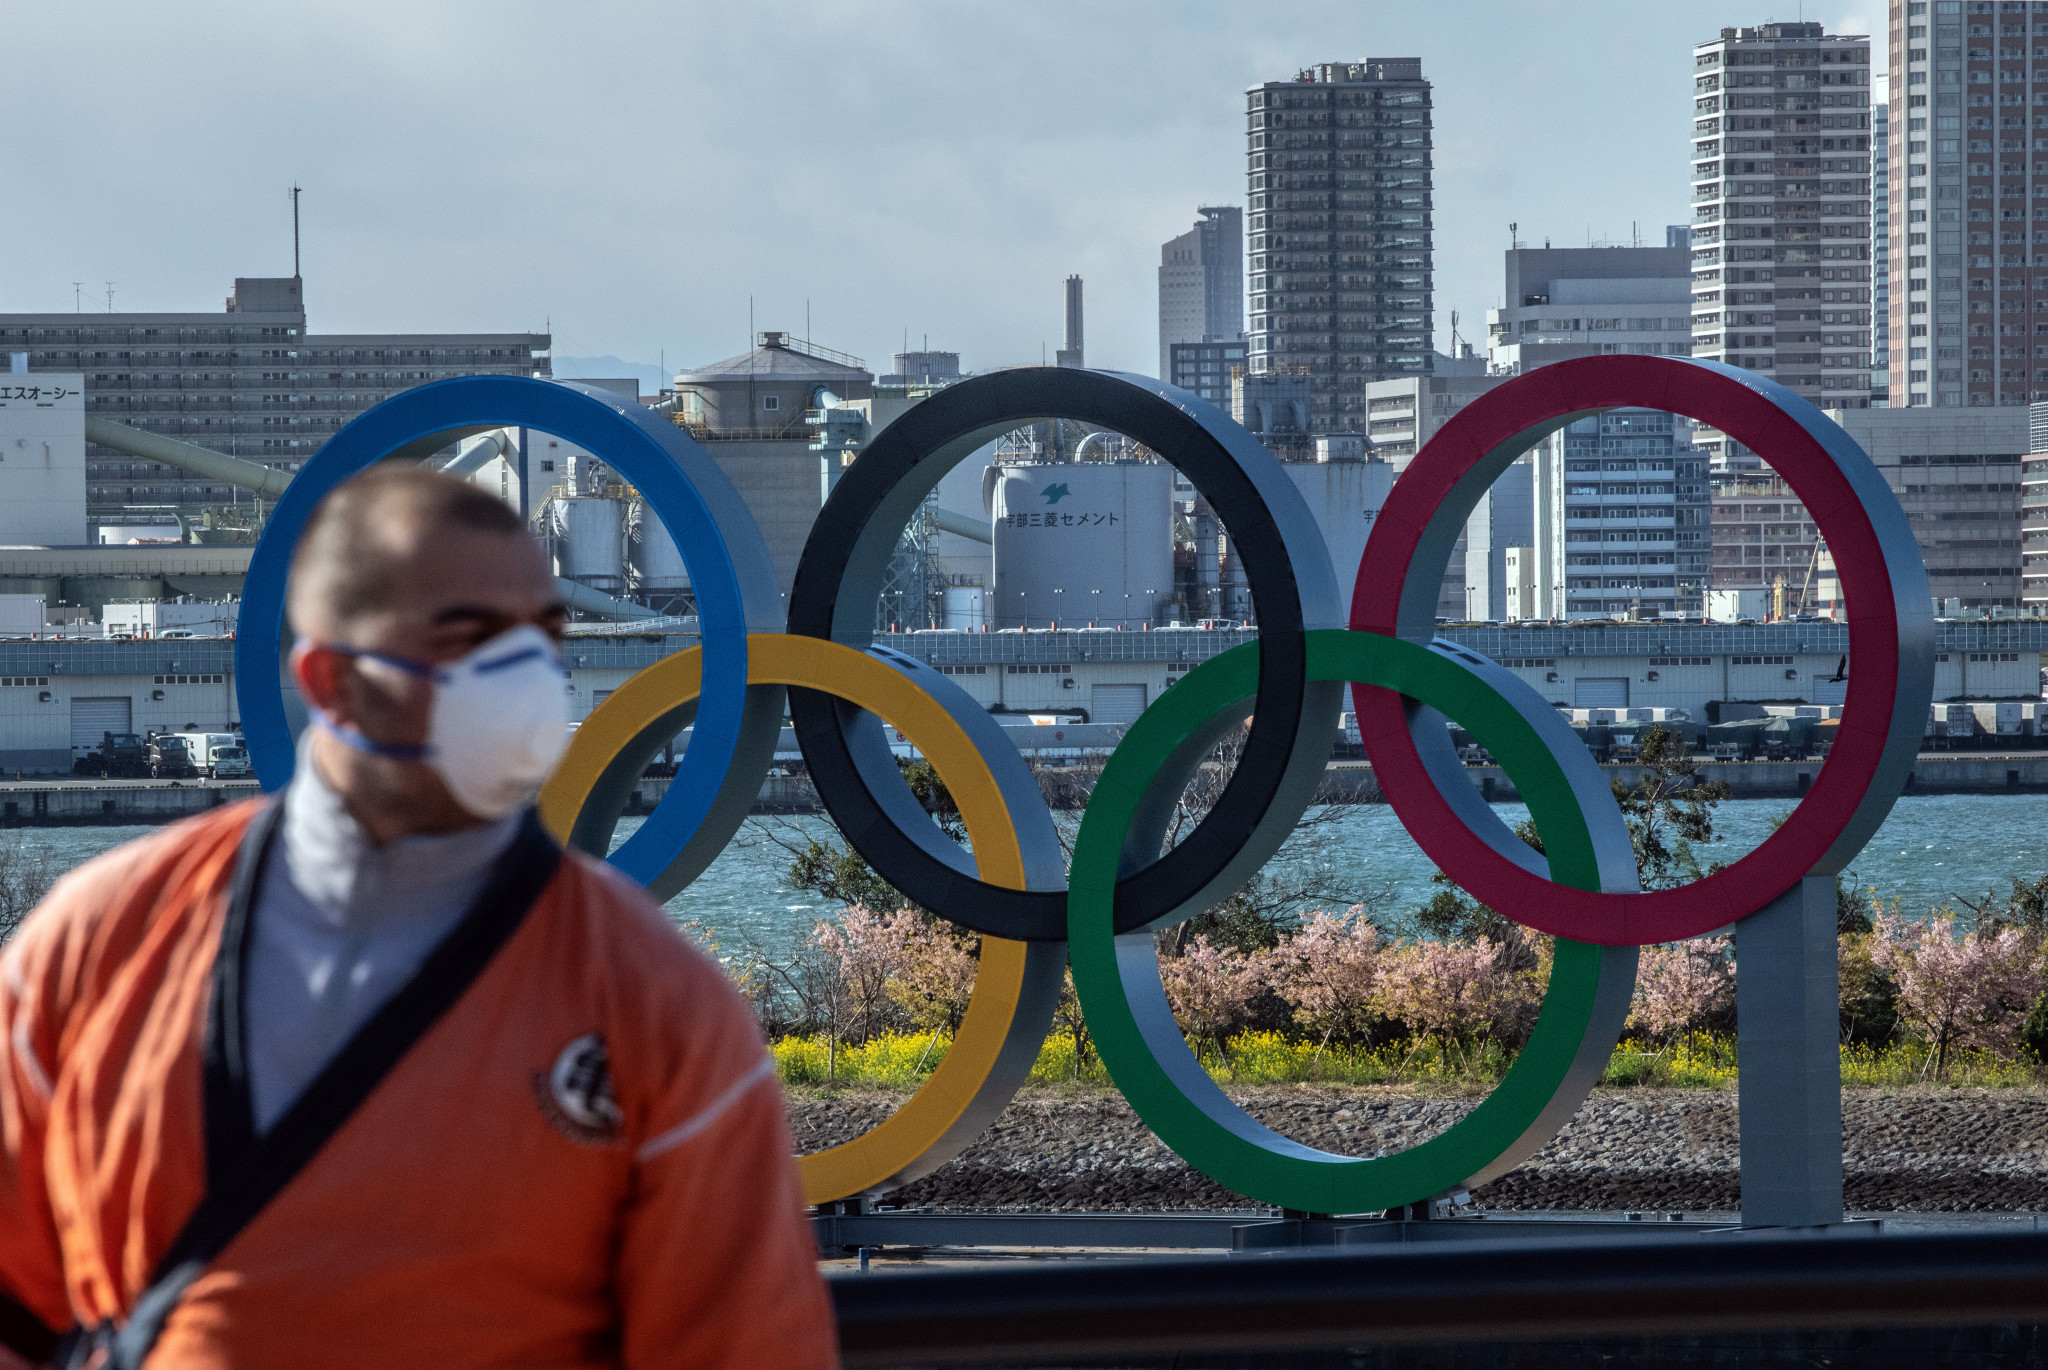 The Tokyo 2020 Olympic and Paralympic Games have been rescheduled due to the coronavirus pandemic ©Getty Images